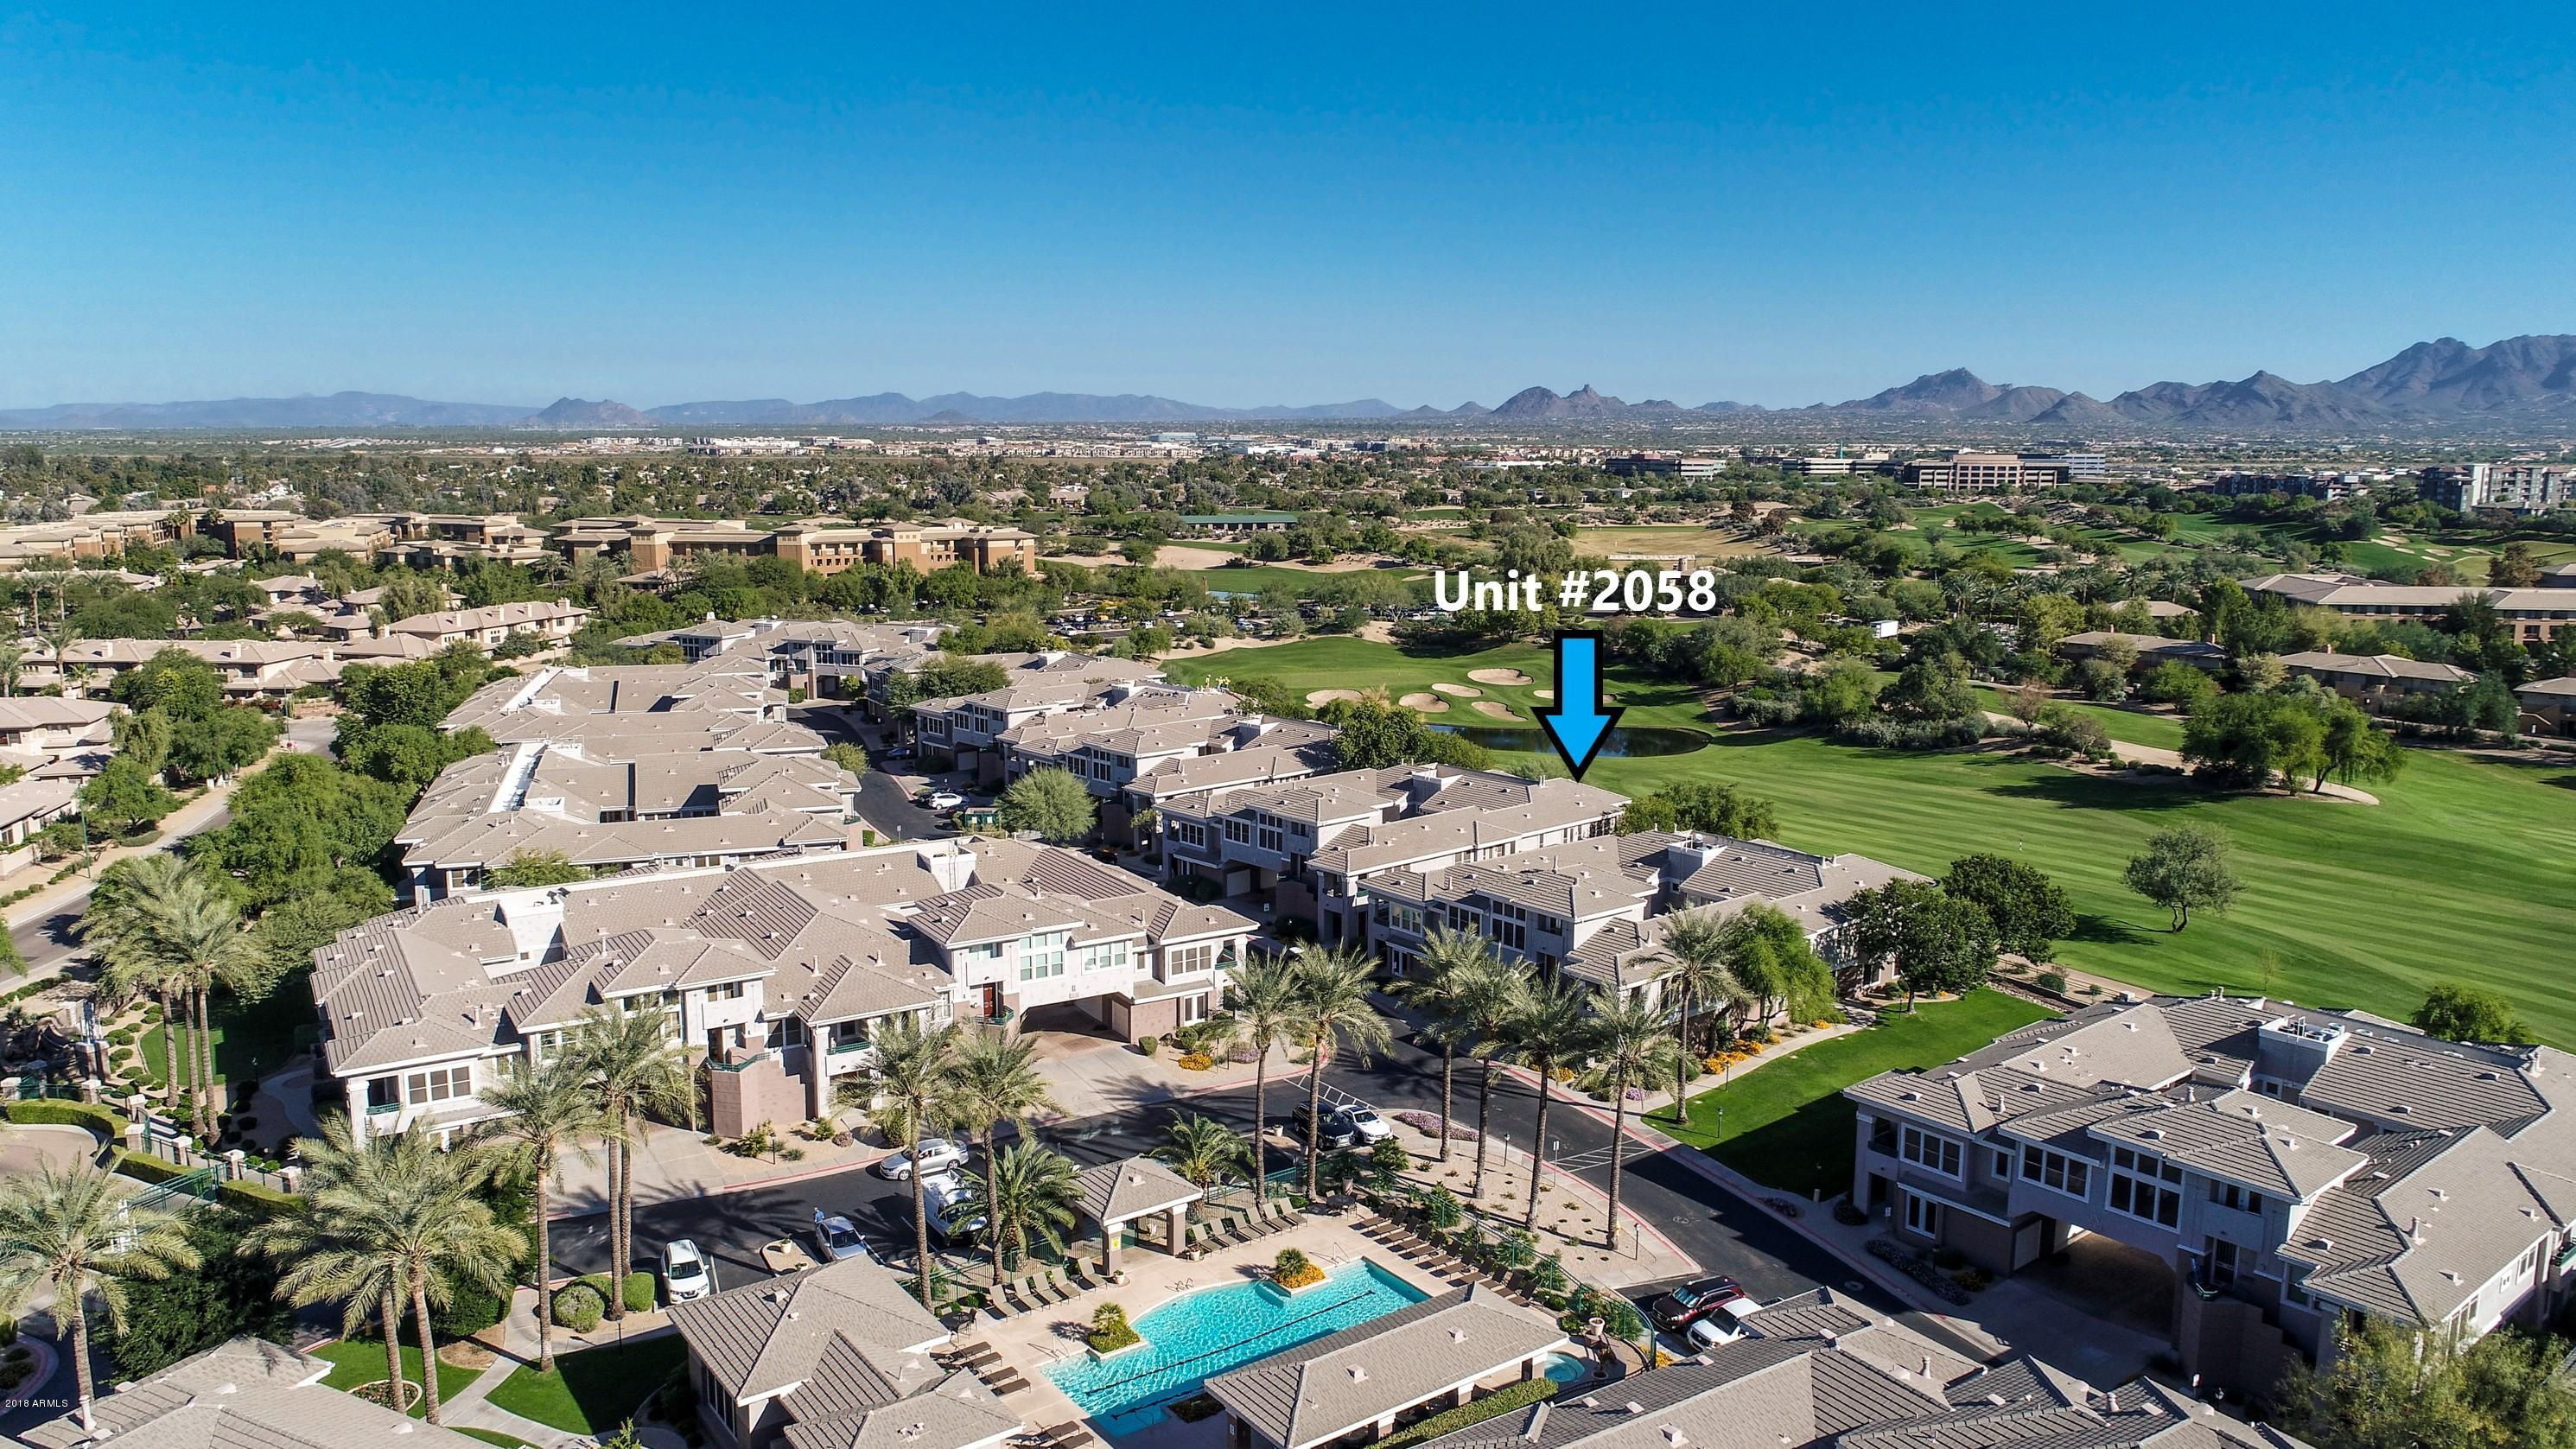 Photo of 15221 N CLUBGATE Drive #2058, Scottsdale, AZ 85254